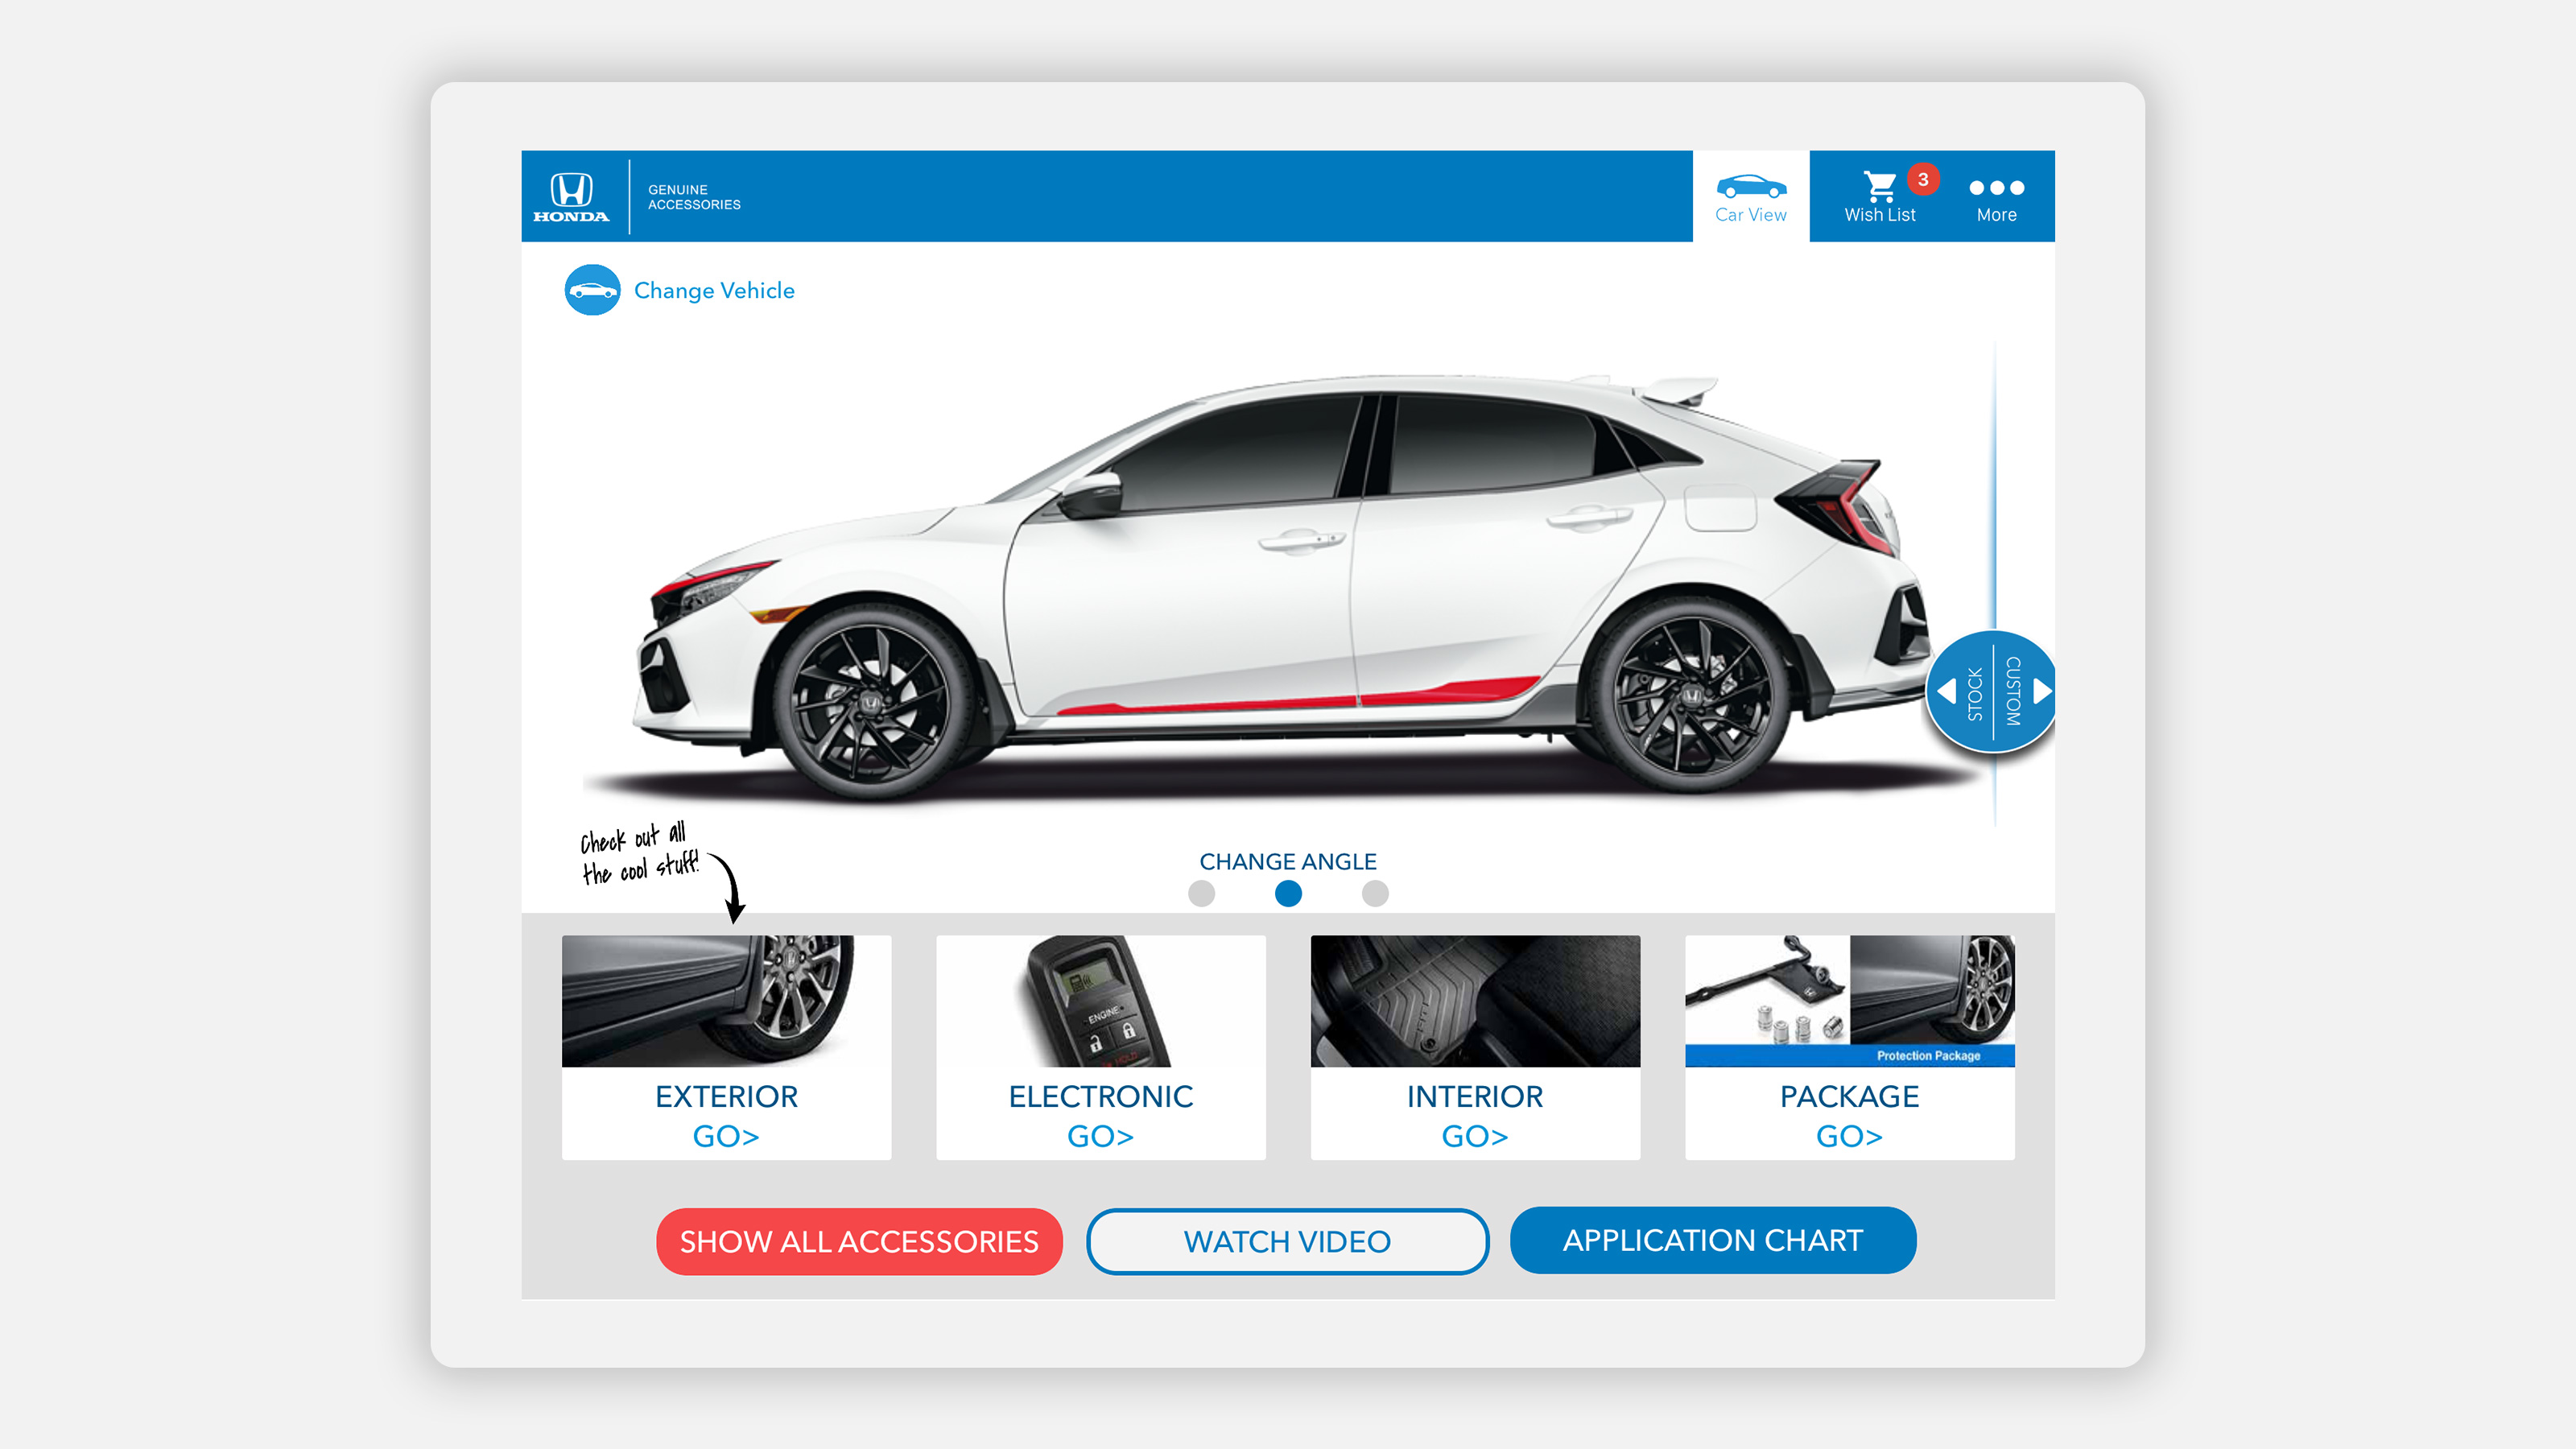 honda accessories app on tablet - show all accessories car view page